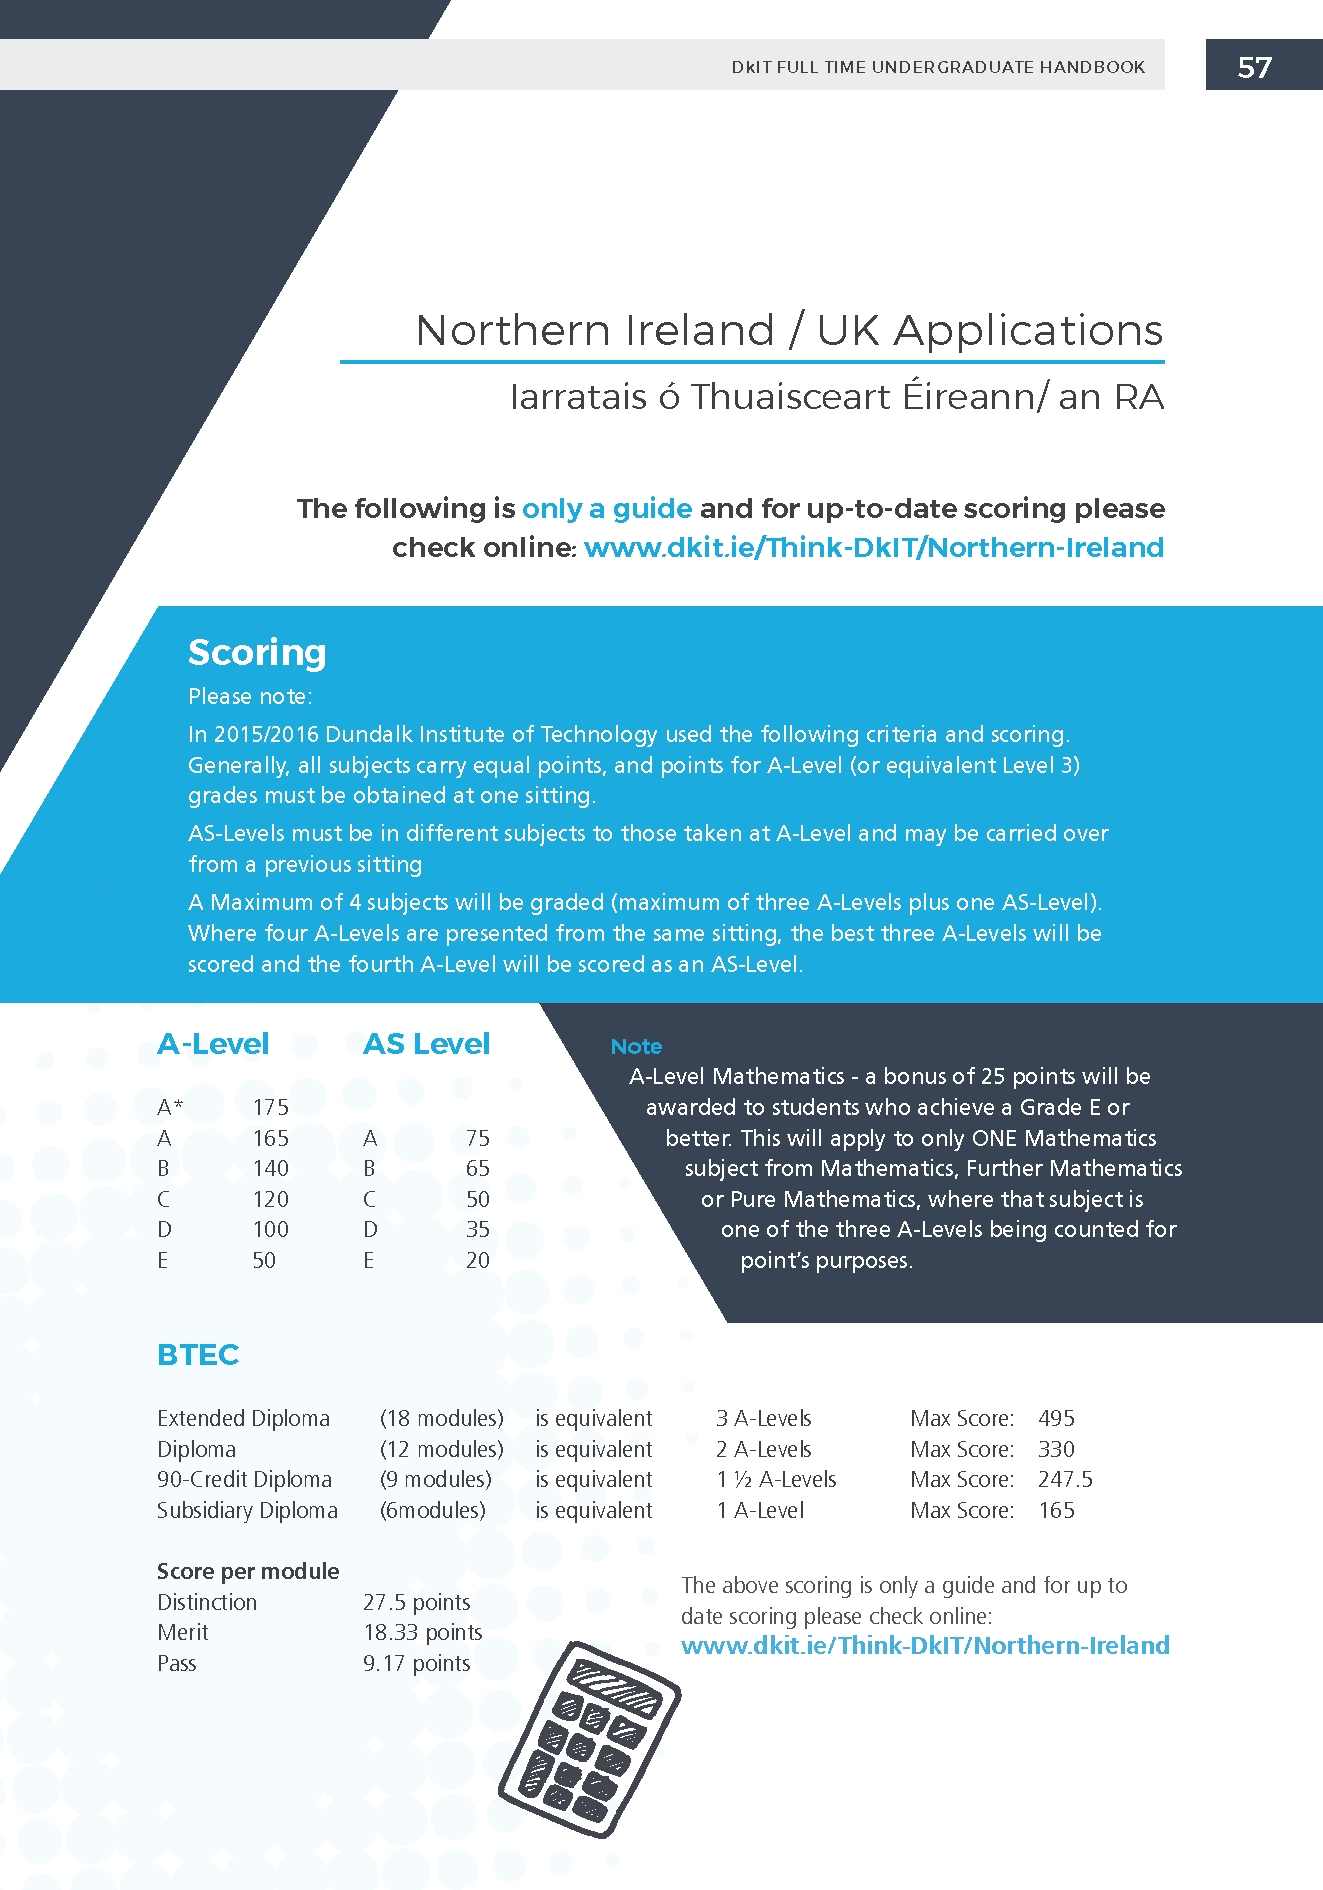 Northern Ireland / UK Applications (Page 57)